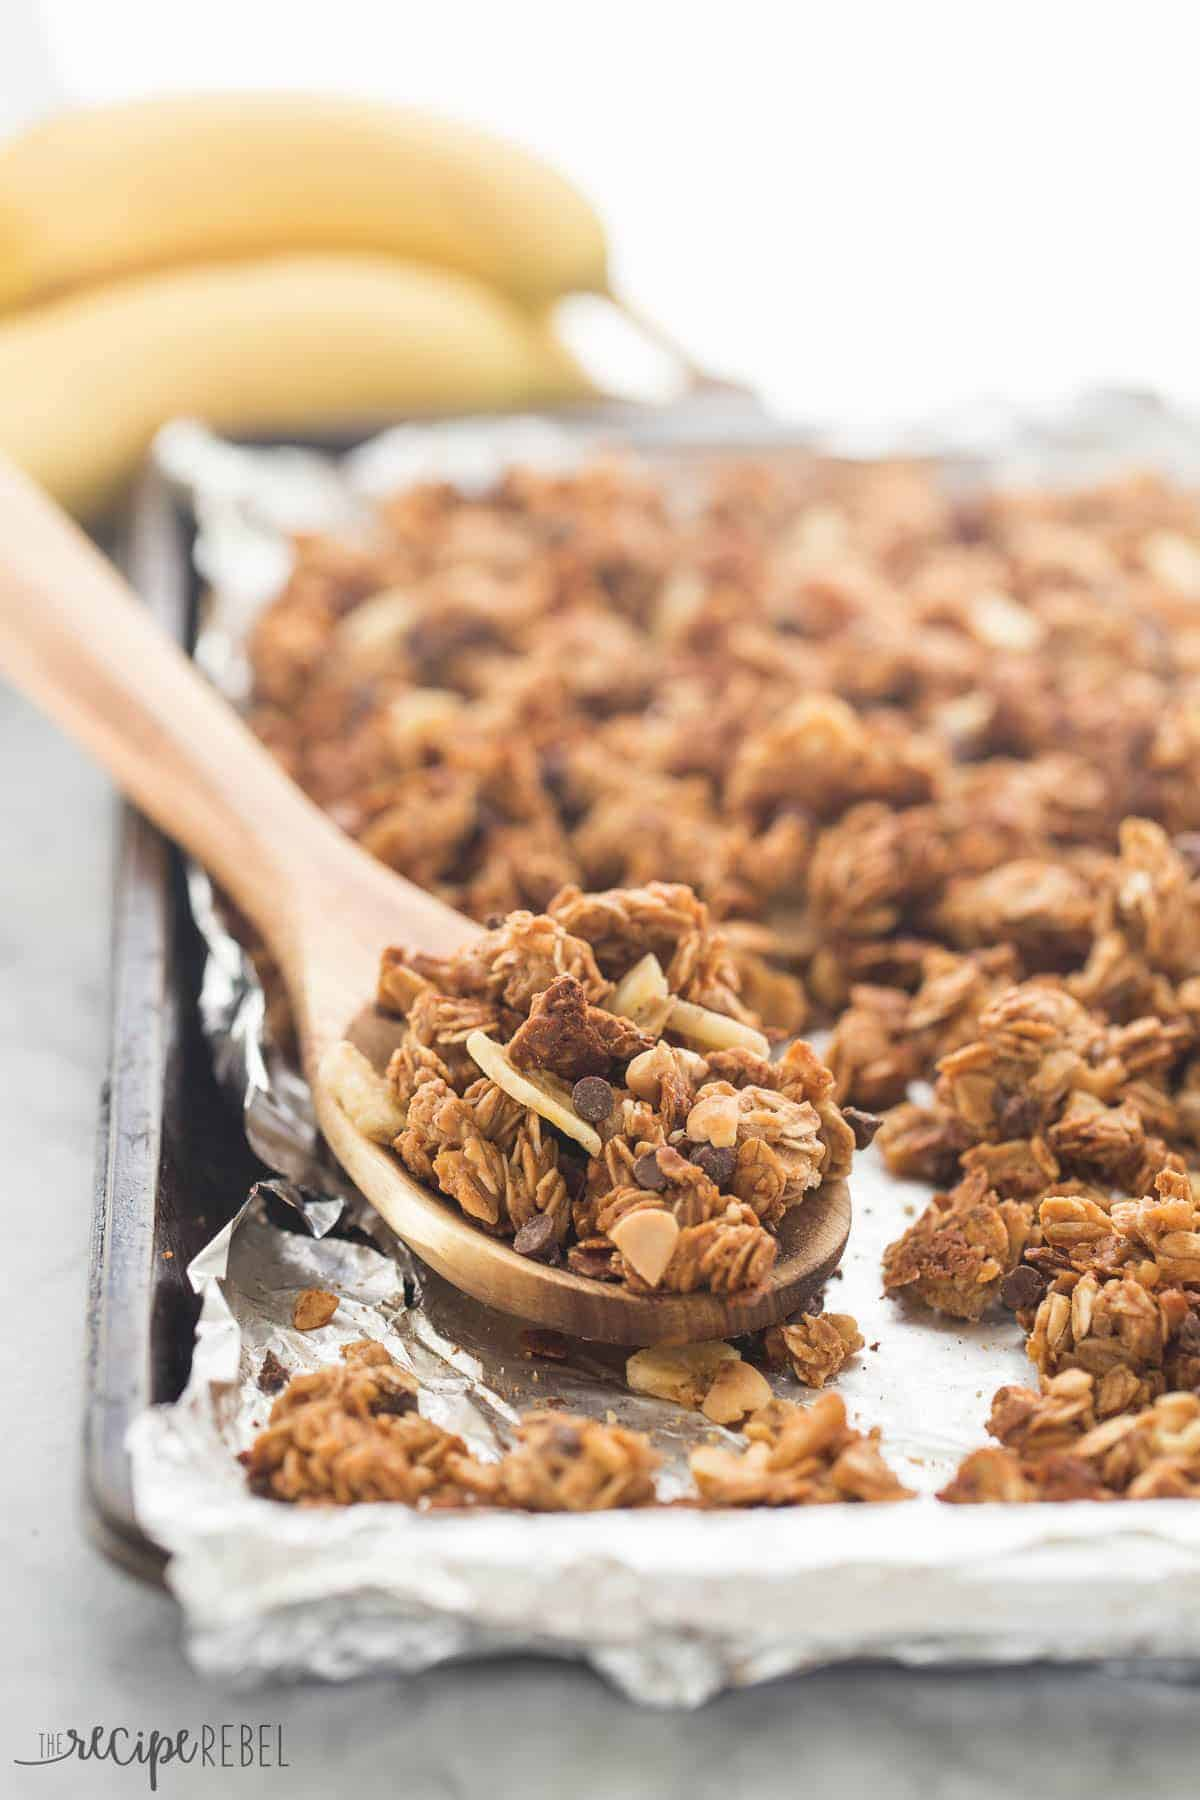 chunky monkey granola baked on a sheet pan lined with foil and some in a wooden spoon